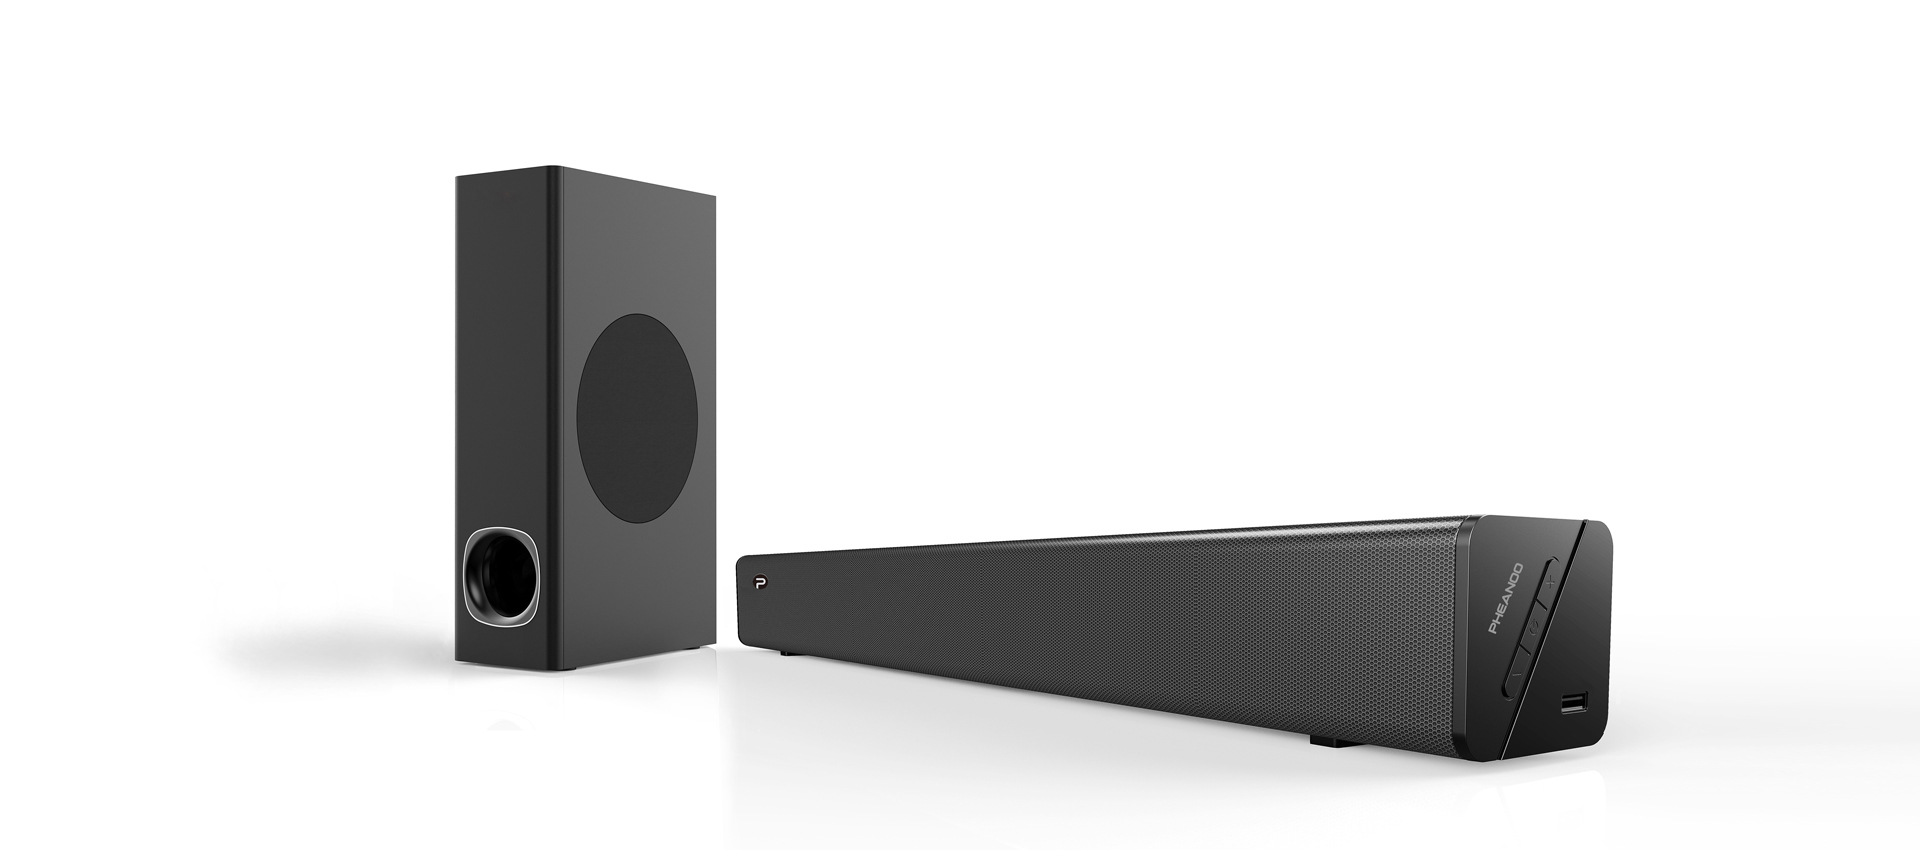 Pheanoo Audio Ltd Supplies New Sound Bars With Incredible Features To Take The Home Entertainment Experience To The Next Level